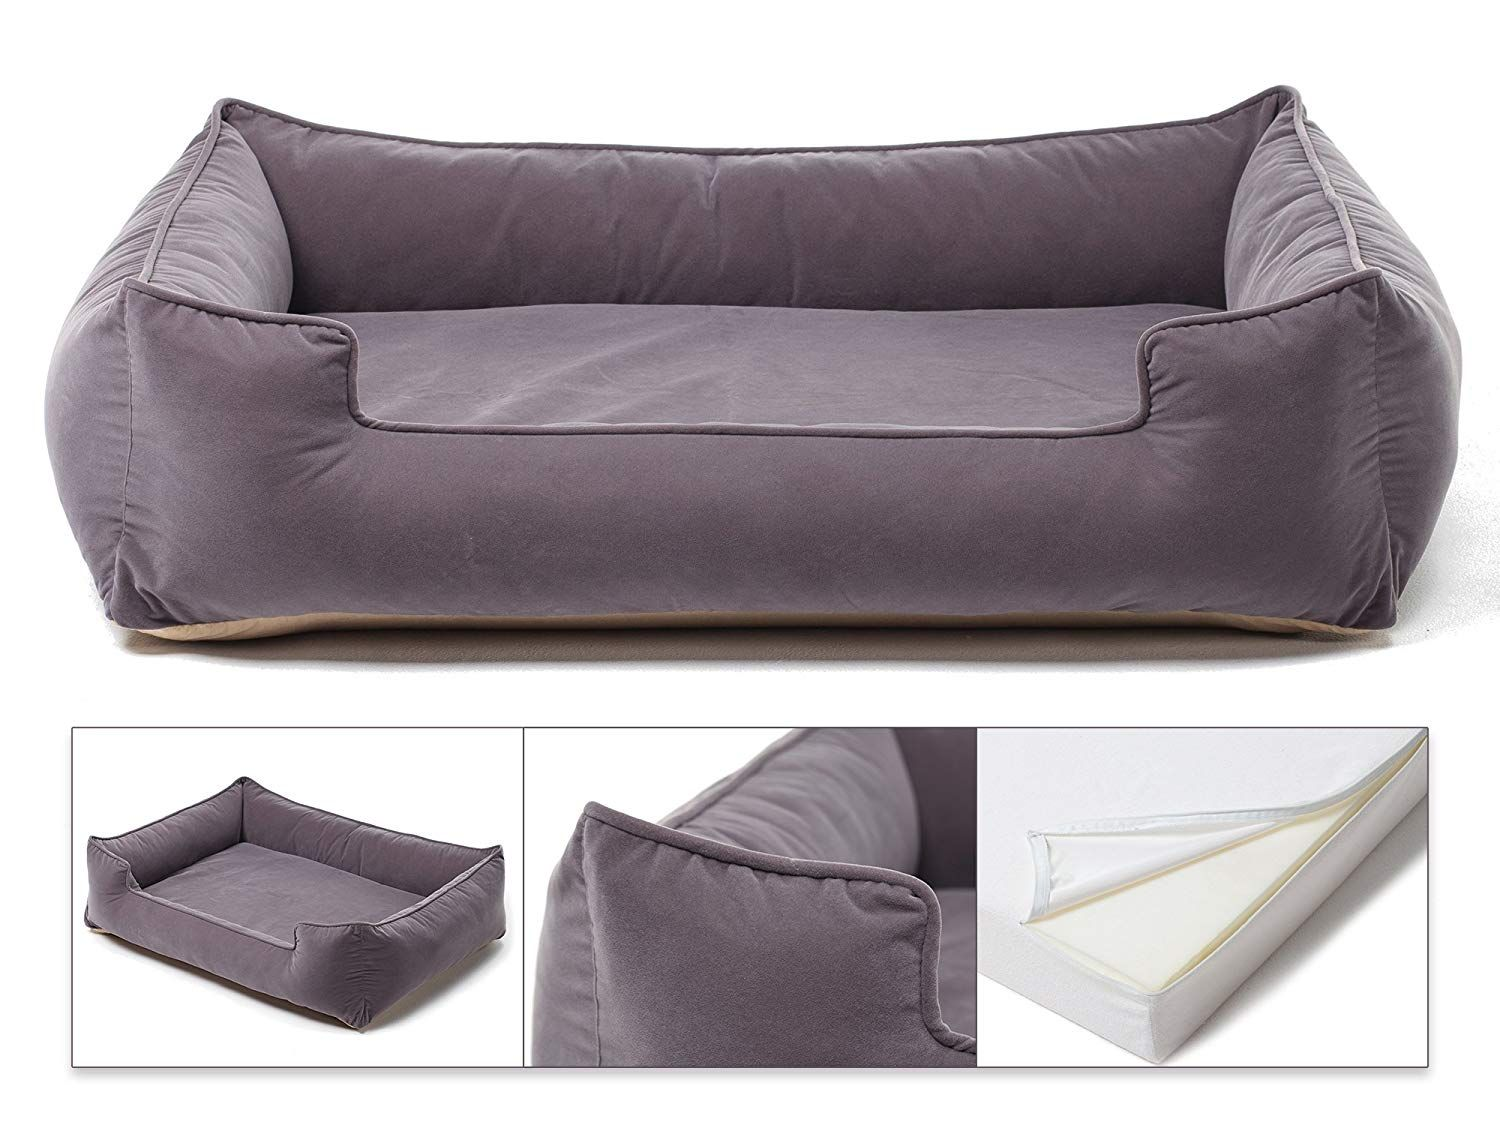 Petsbao Premium Orthopedic Dog Bed and Lounge with Solid